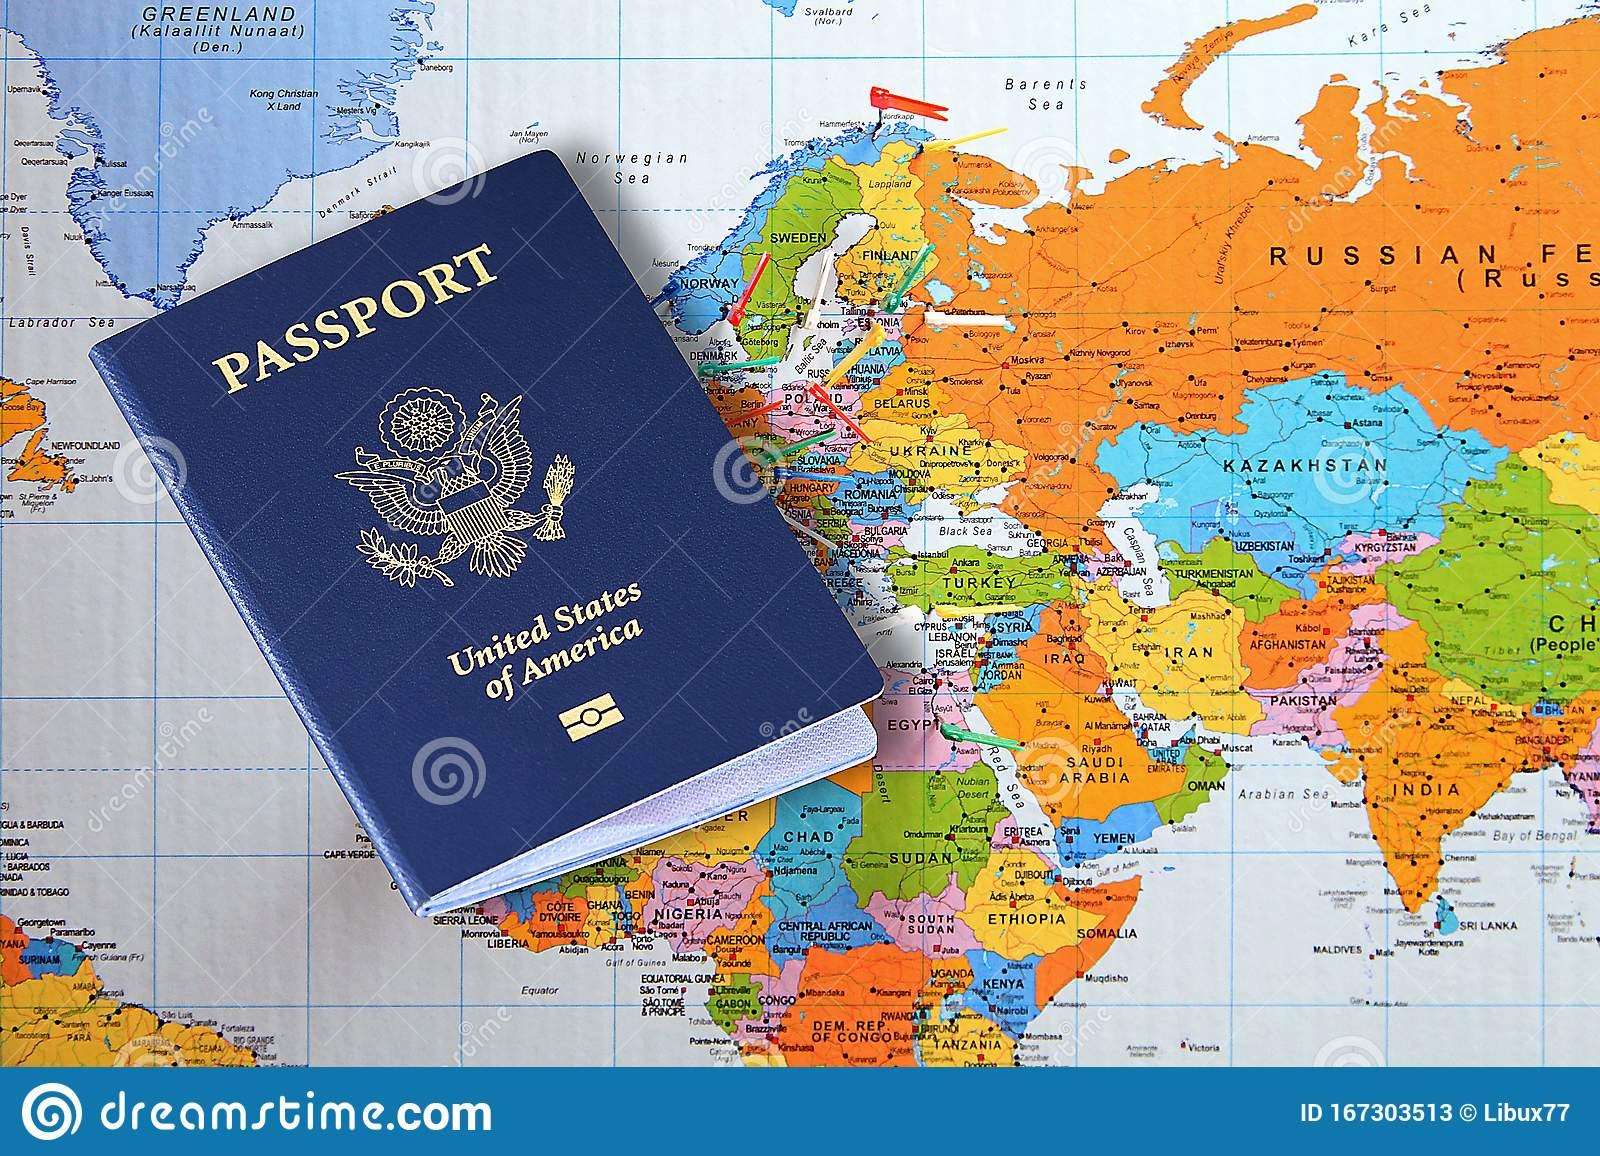 United States Of America Passport On World Map Stock Image Image Of Business Blue 167303513